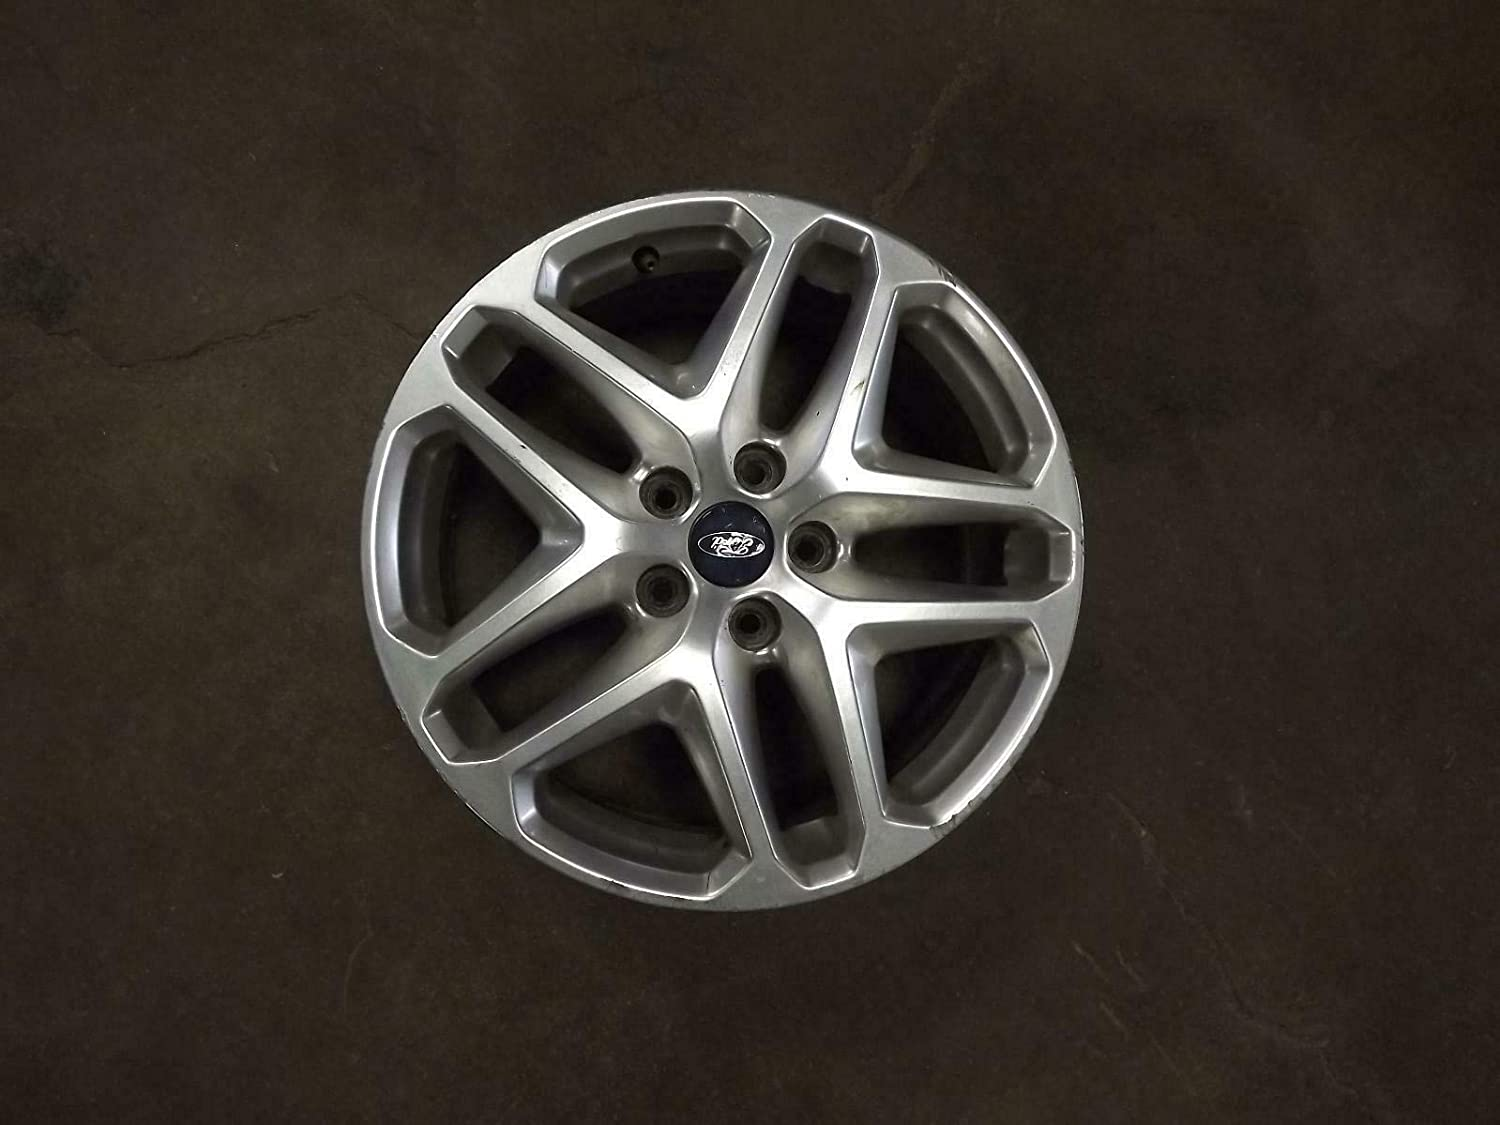 Morad Parts Super special price 13-14 Compatible with Ford 17x7-1 Rim Wheel 2 Popular brand Fusion